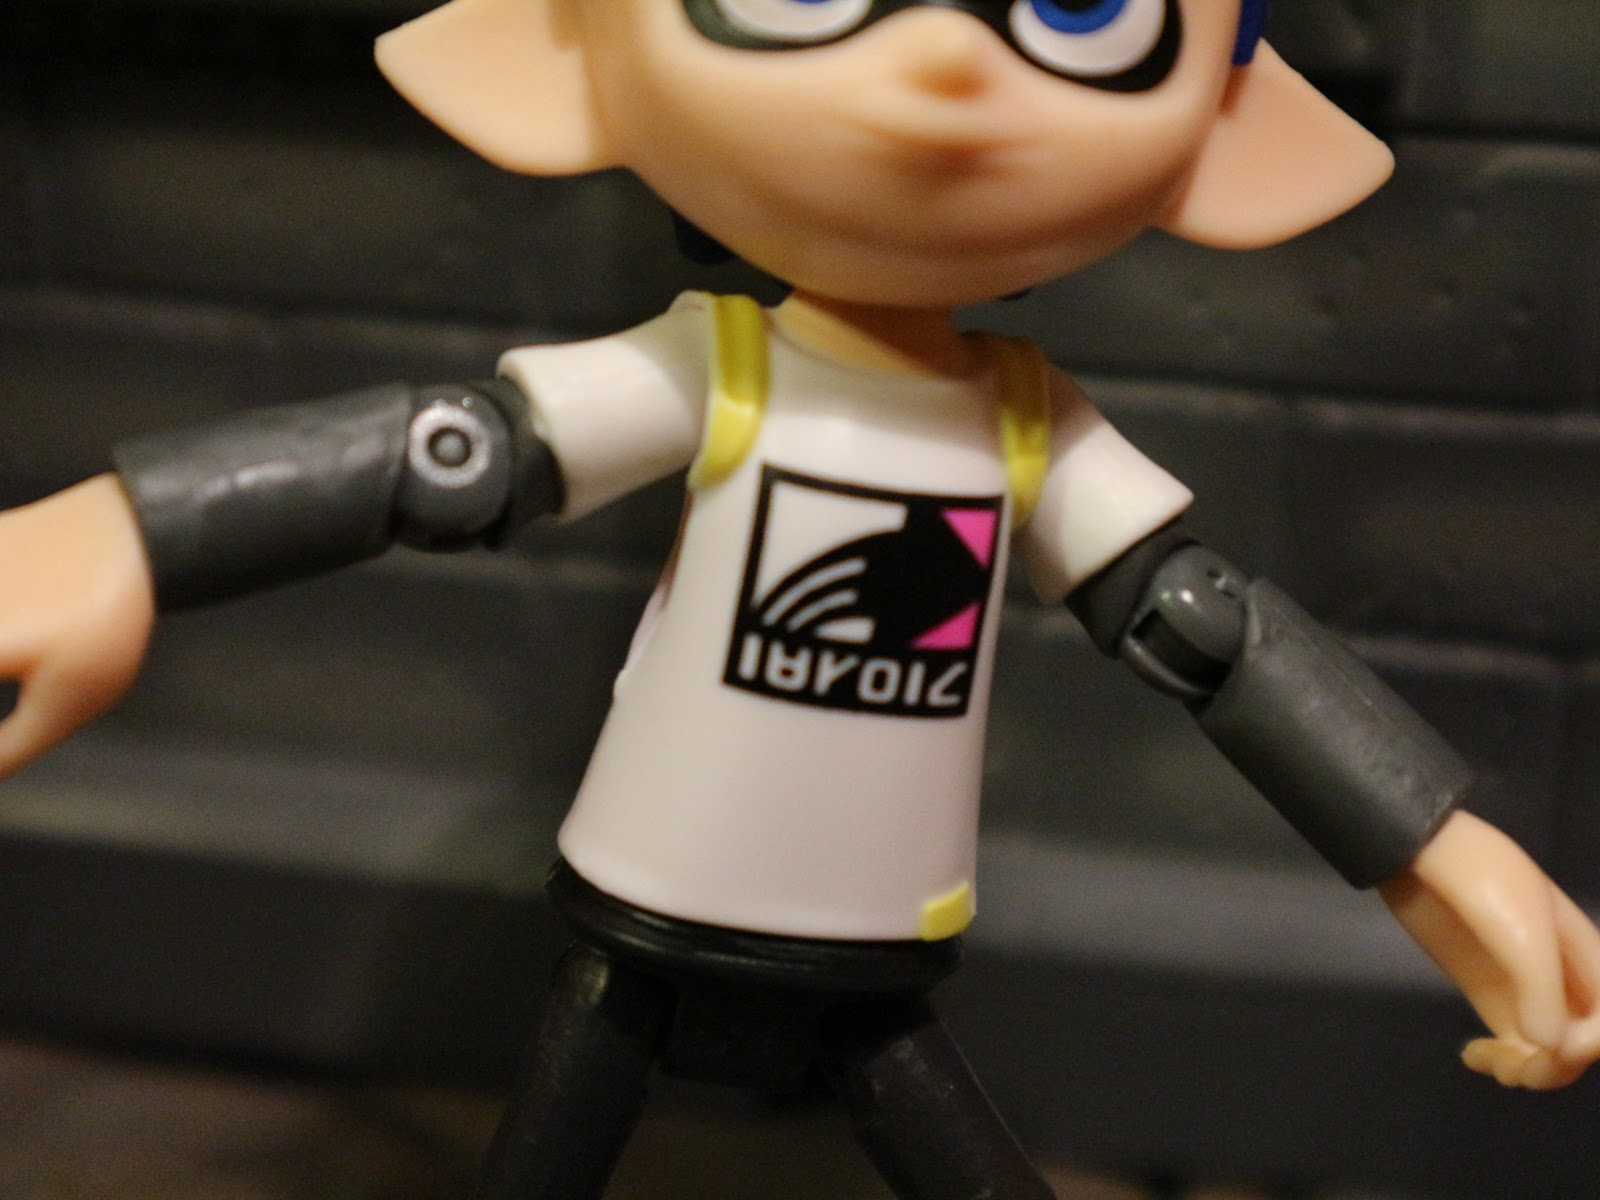 Inkling Boy Is Also Wearing A Cool Shirt The Print On It Really Neat And Clean Helps To Bring Some More Life Figure